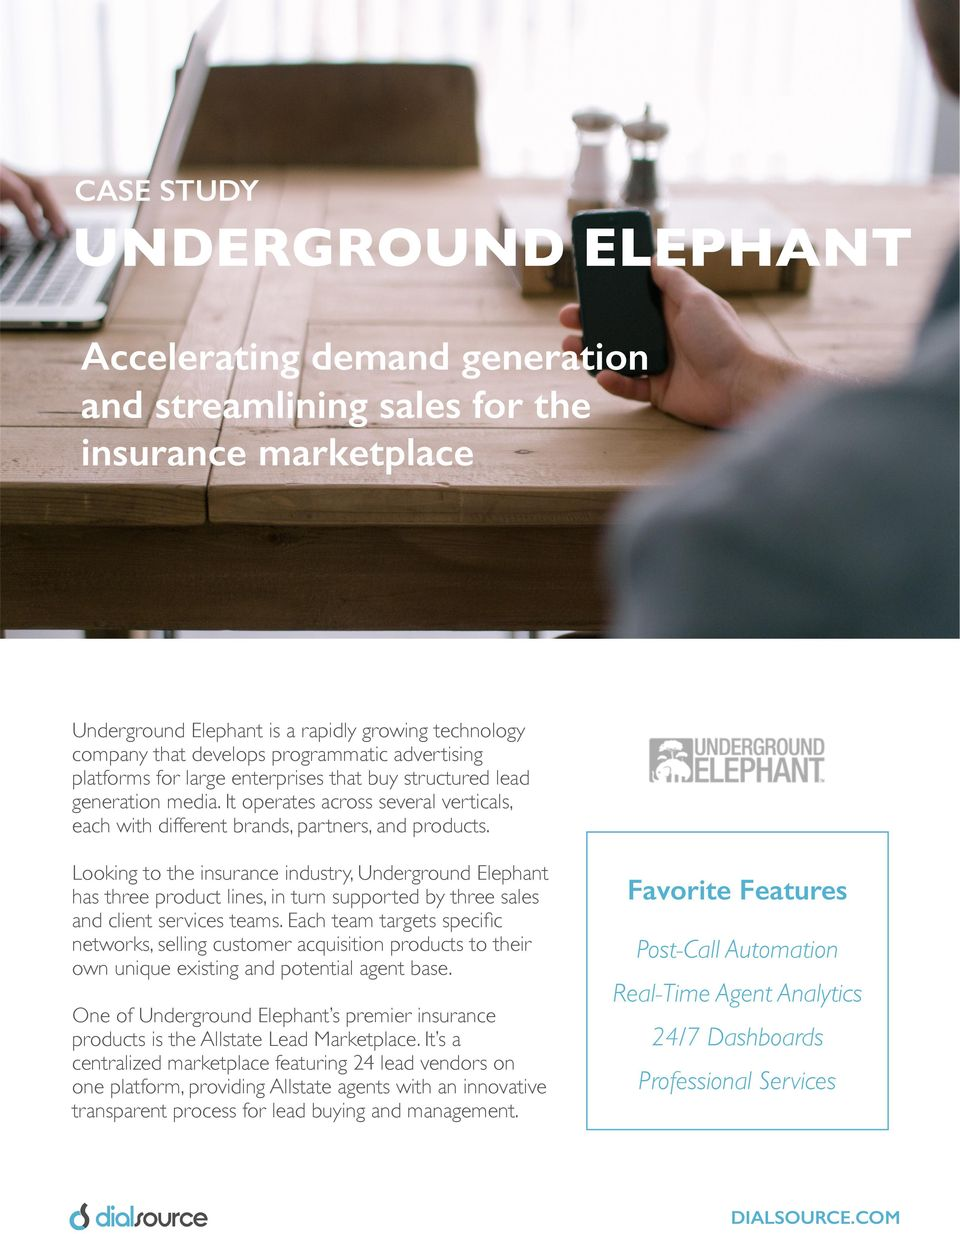 Looking to the insurance industry, Underground Elephant has three product lines, in turn supported by three sales and client services teams.